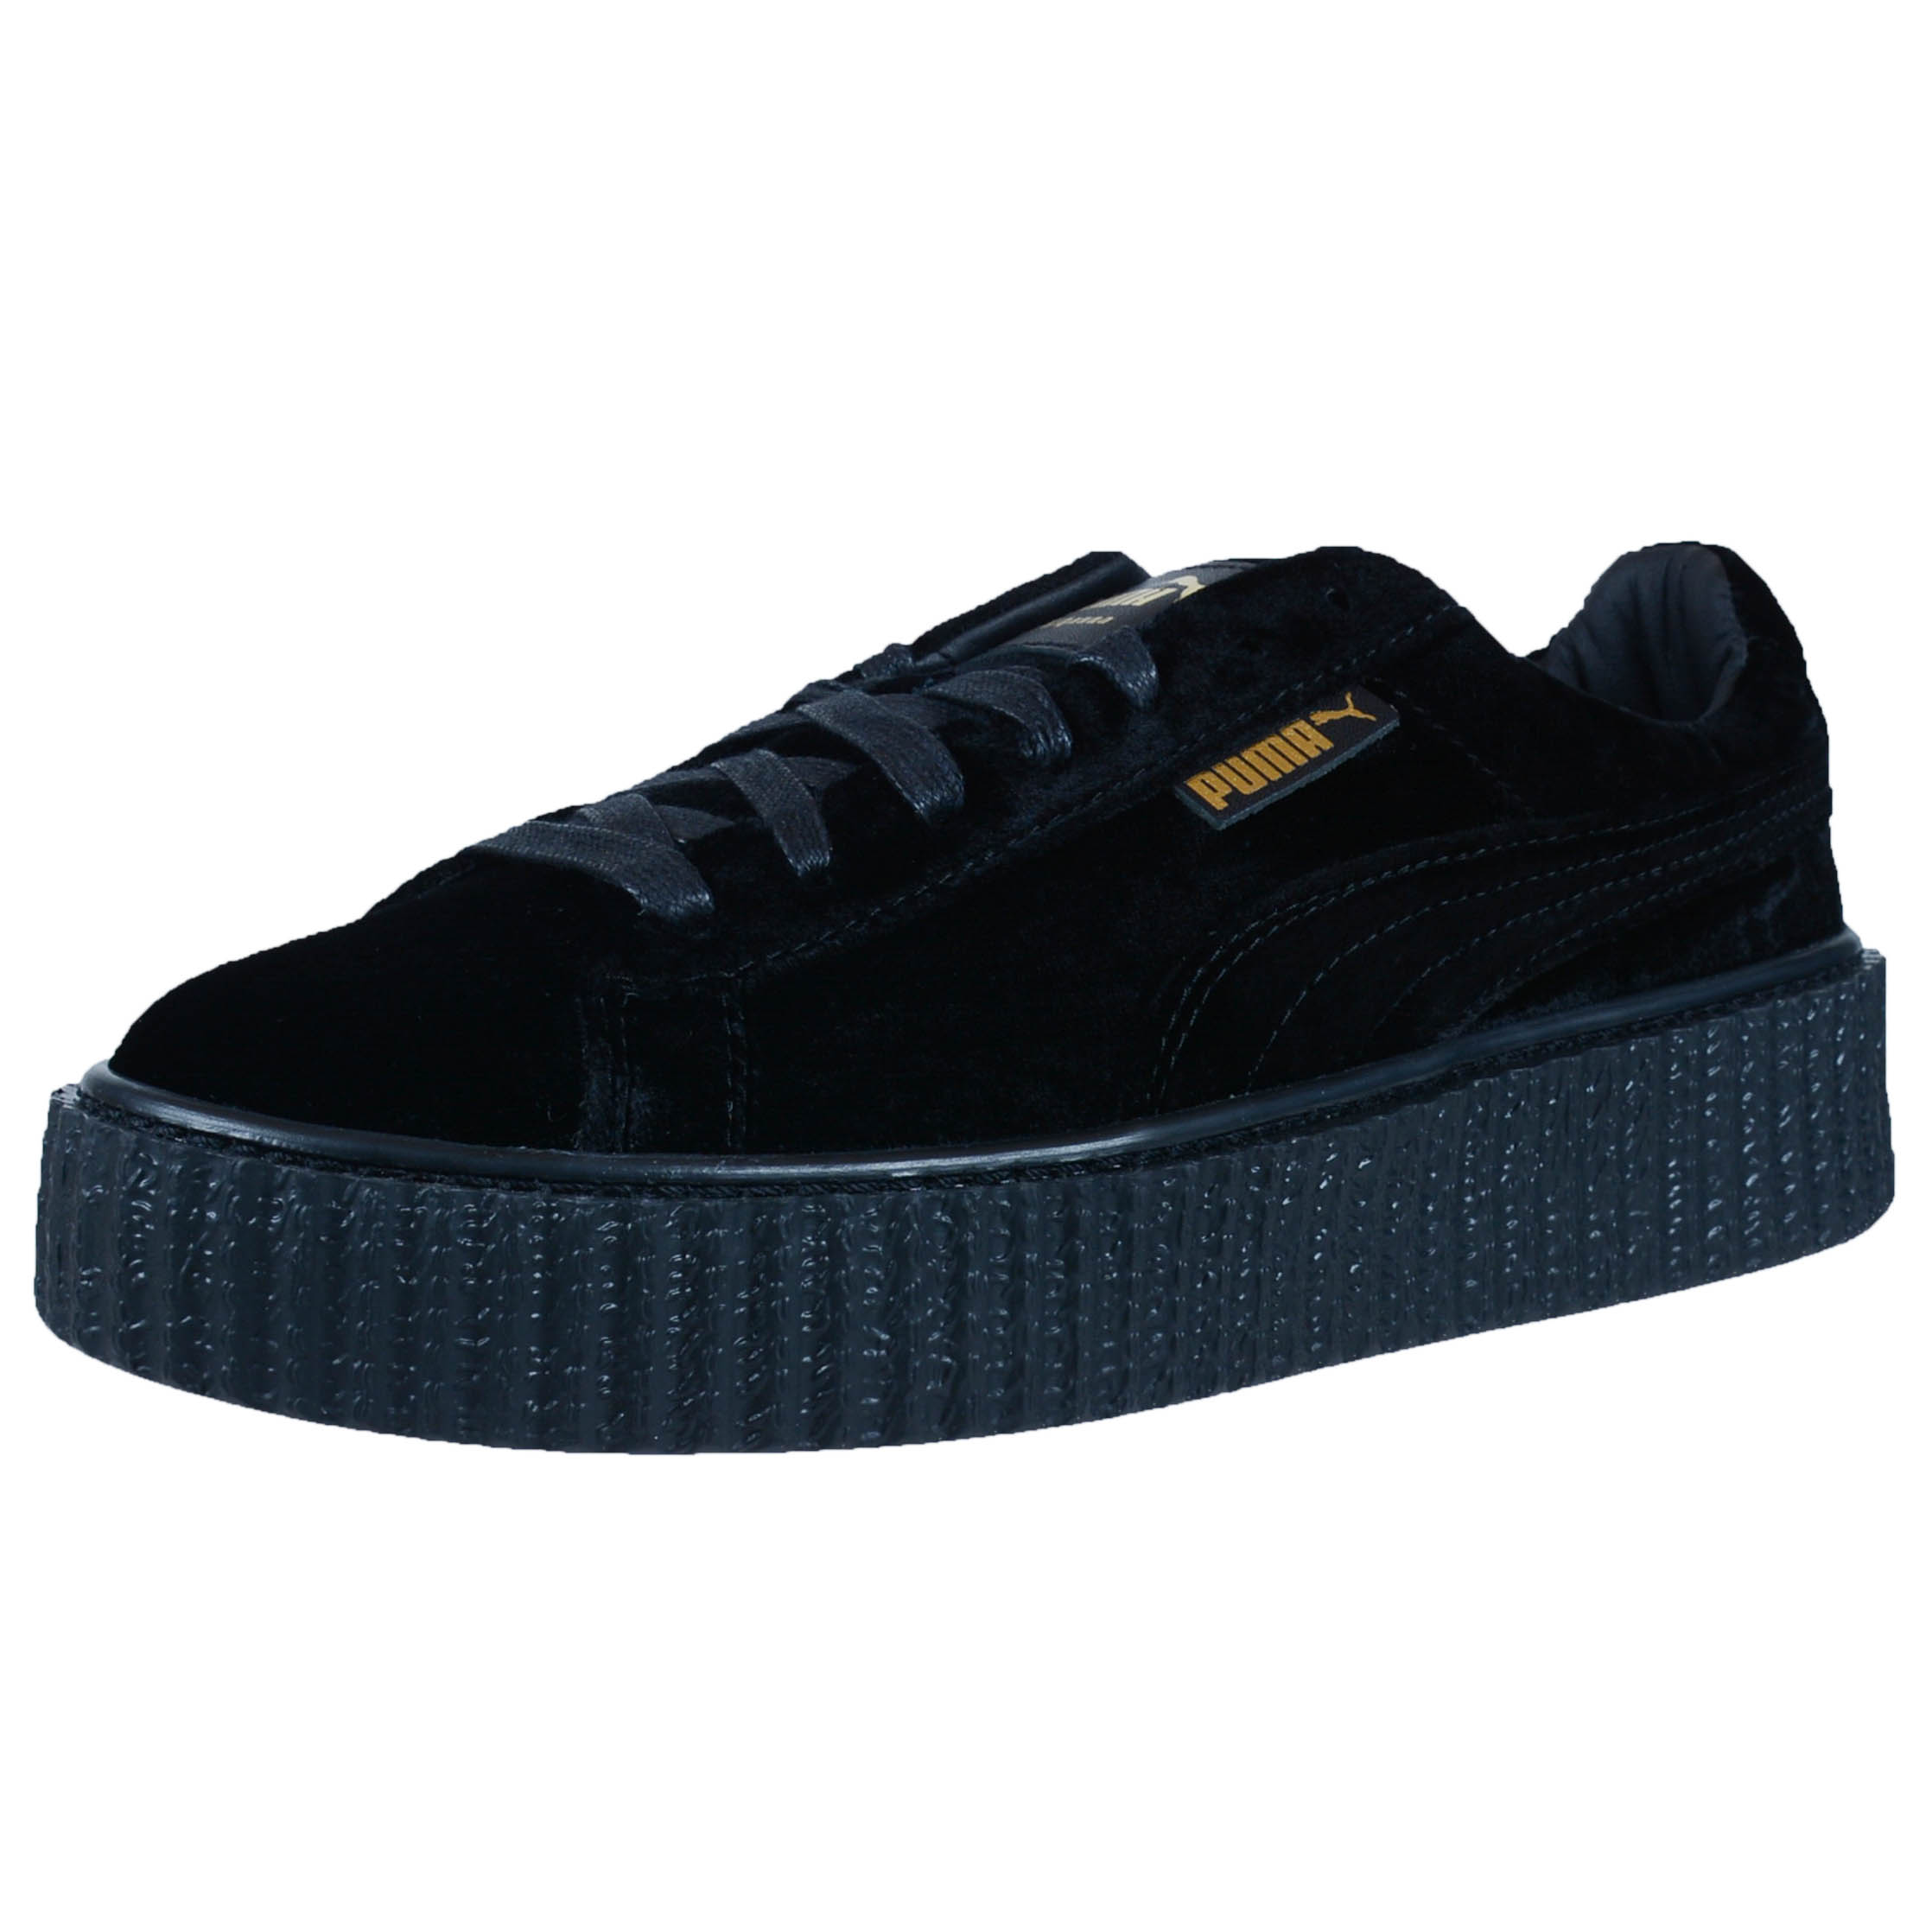 puma by rihanna womens creeper velvet black purple gray fashion sneakers 364466. Black Bedroom Furniture Sets. Home Design Ideas